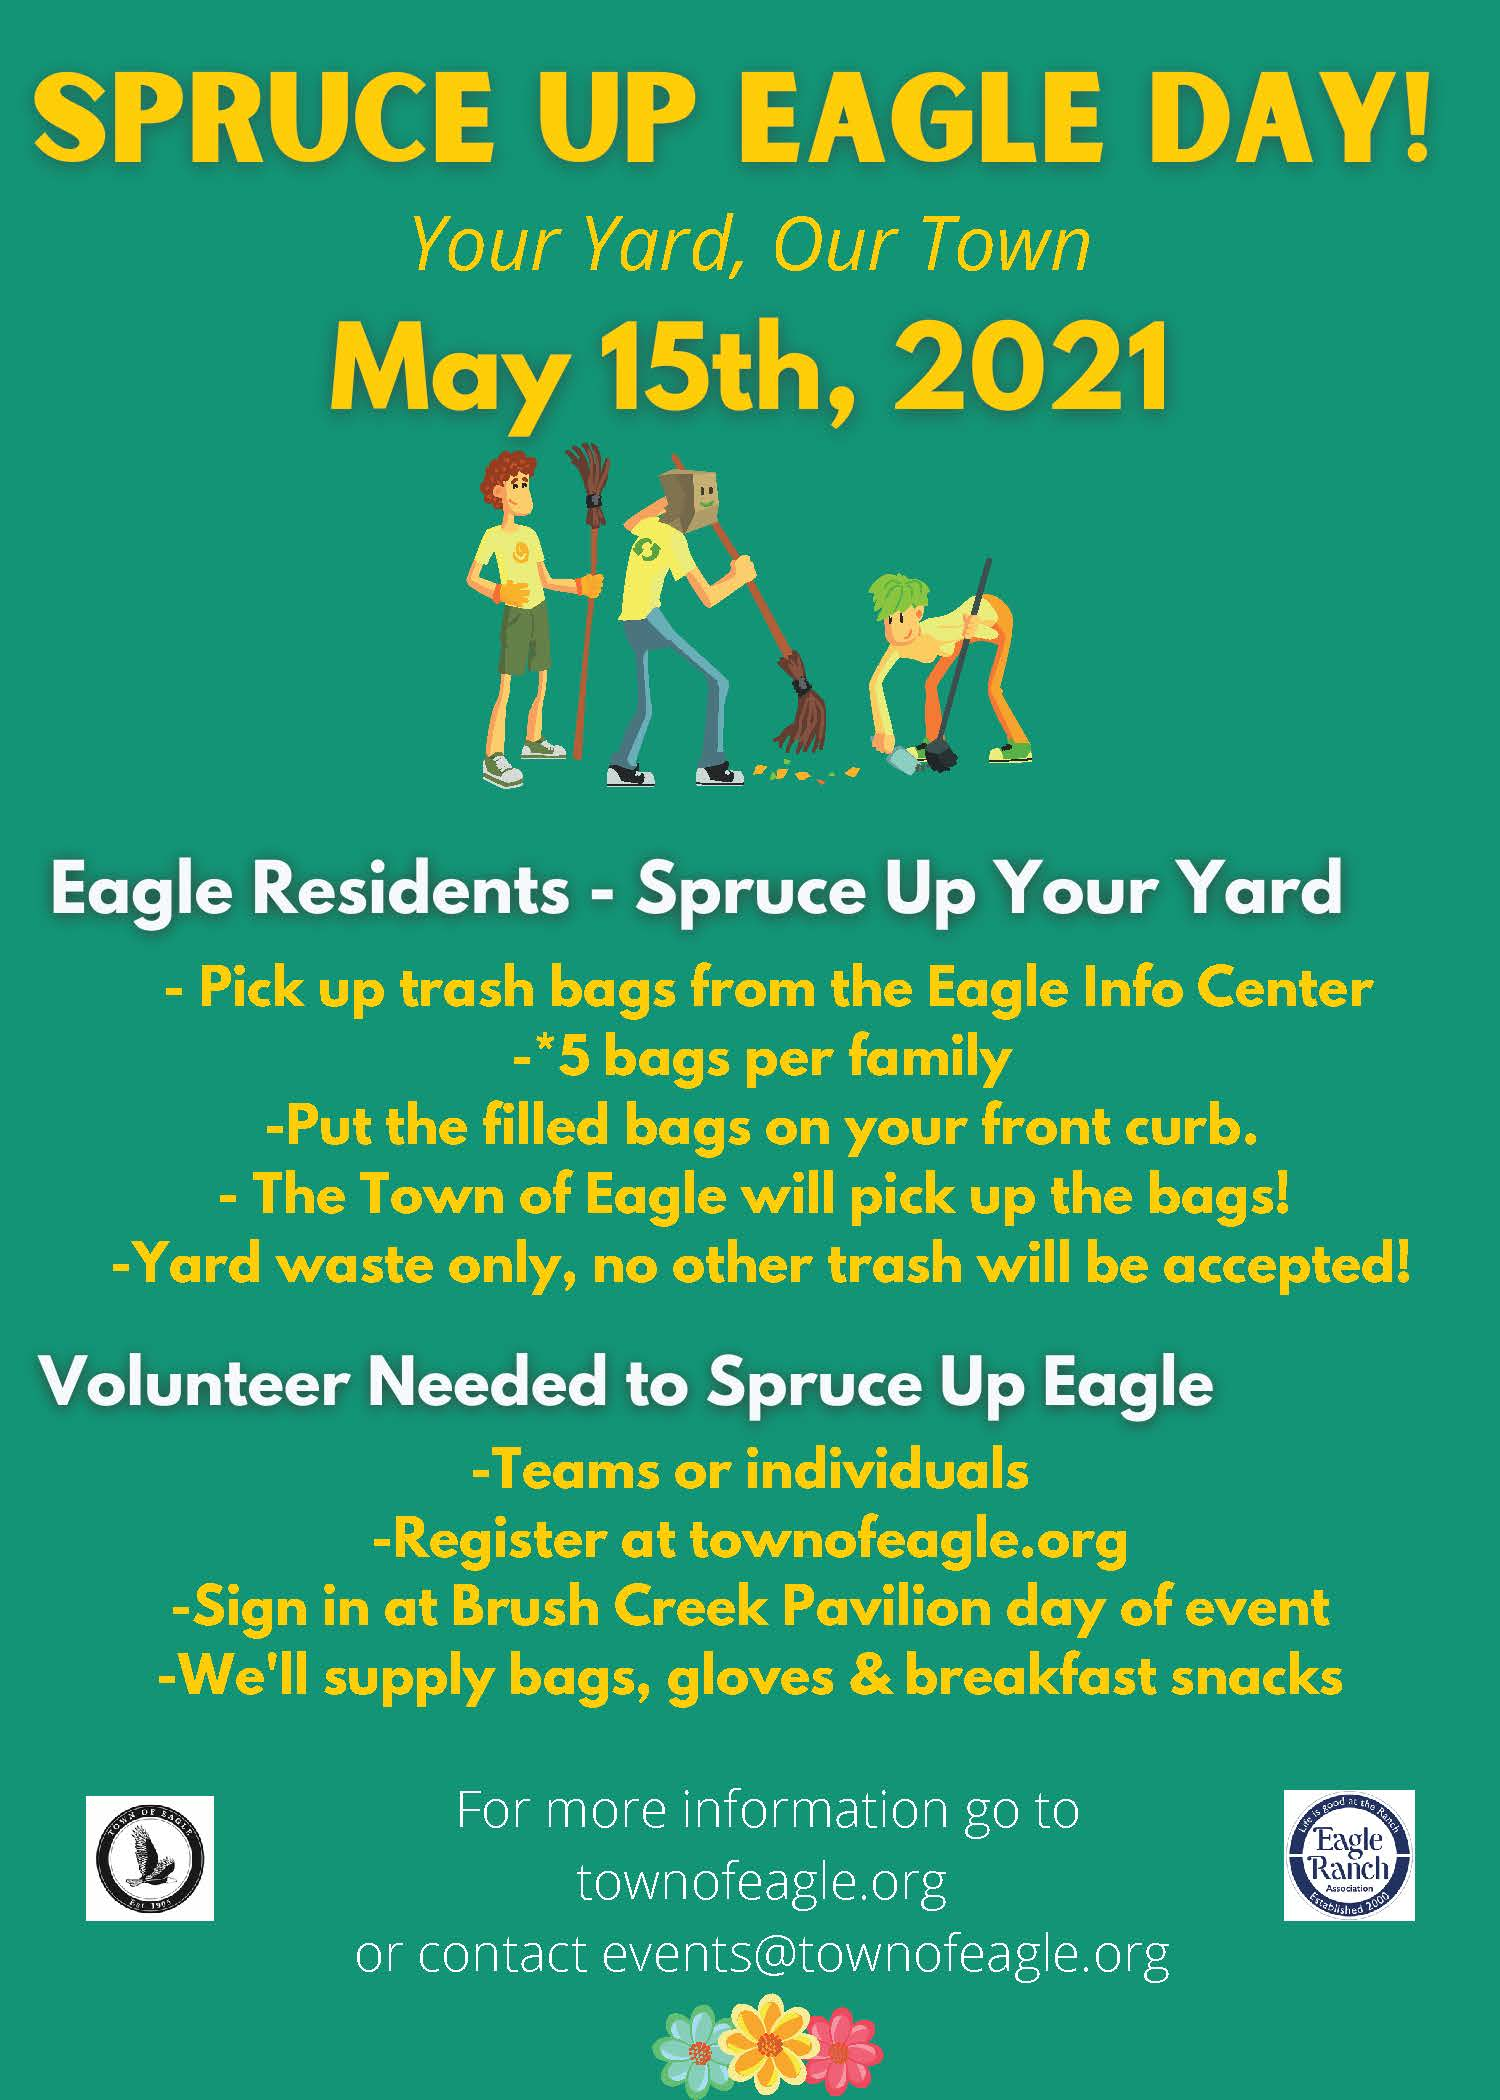 SPRUCE UP EAGLE DAY